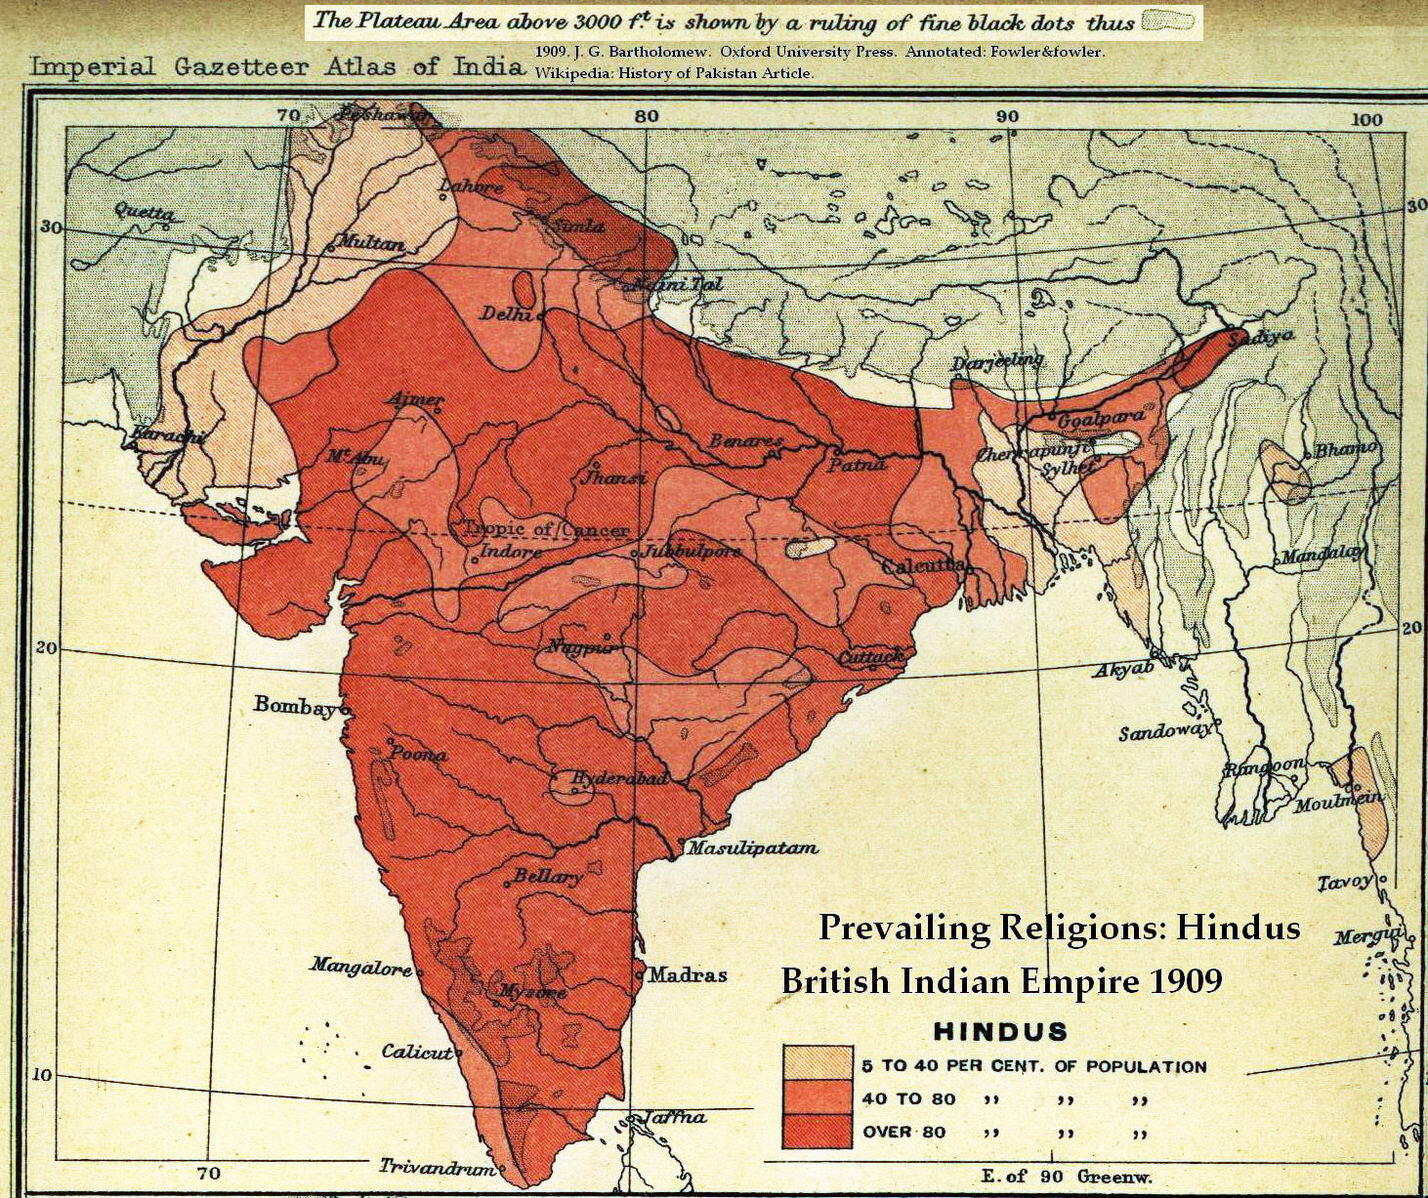 """Map """"Prevailing Religions of the British Indian Empire, 1909: Hindus"""""""